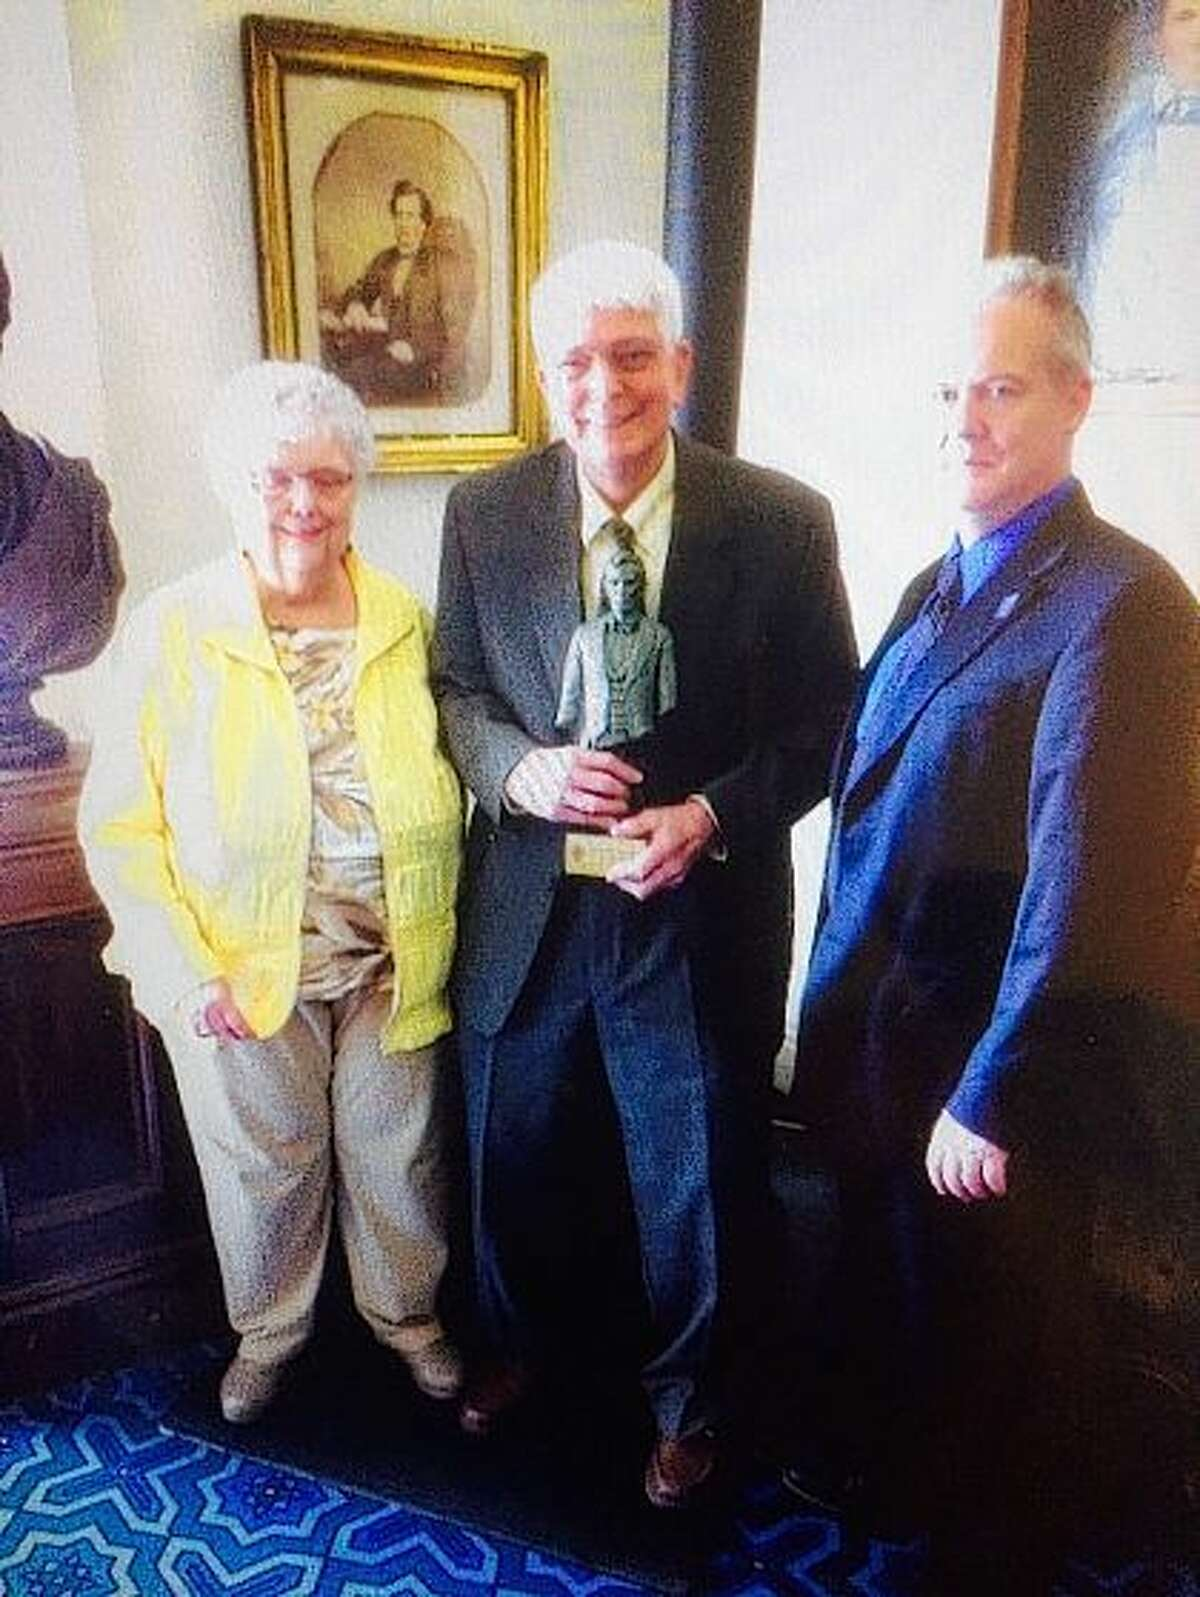 Patricia and Rand Burnette of Jacksonville accept the Lifetime Achievement award from the Illinois State Historical Society at the society's 117th annual meeting. Presenting the award is Chris McDonald, co-chairman of the ISHS Annual Awards Committee.